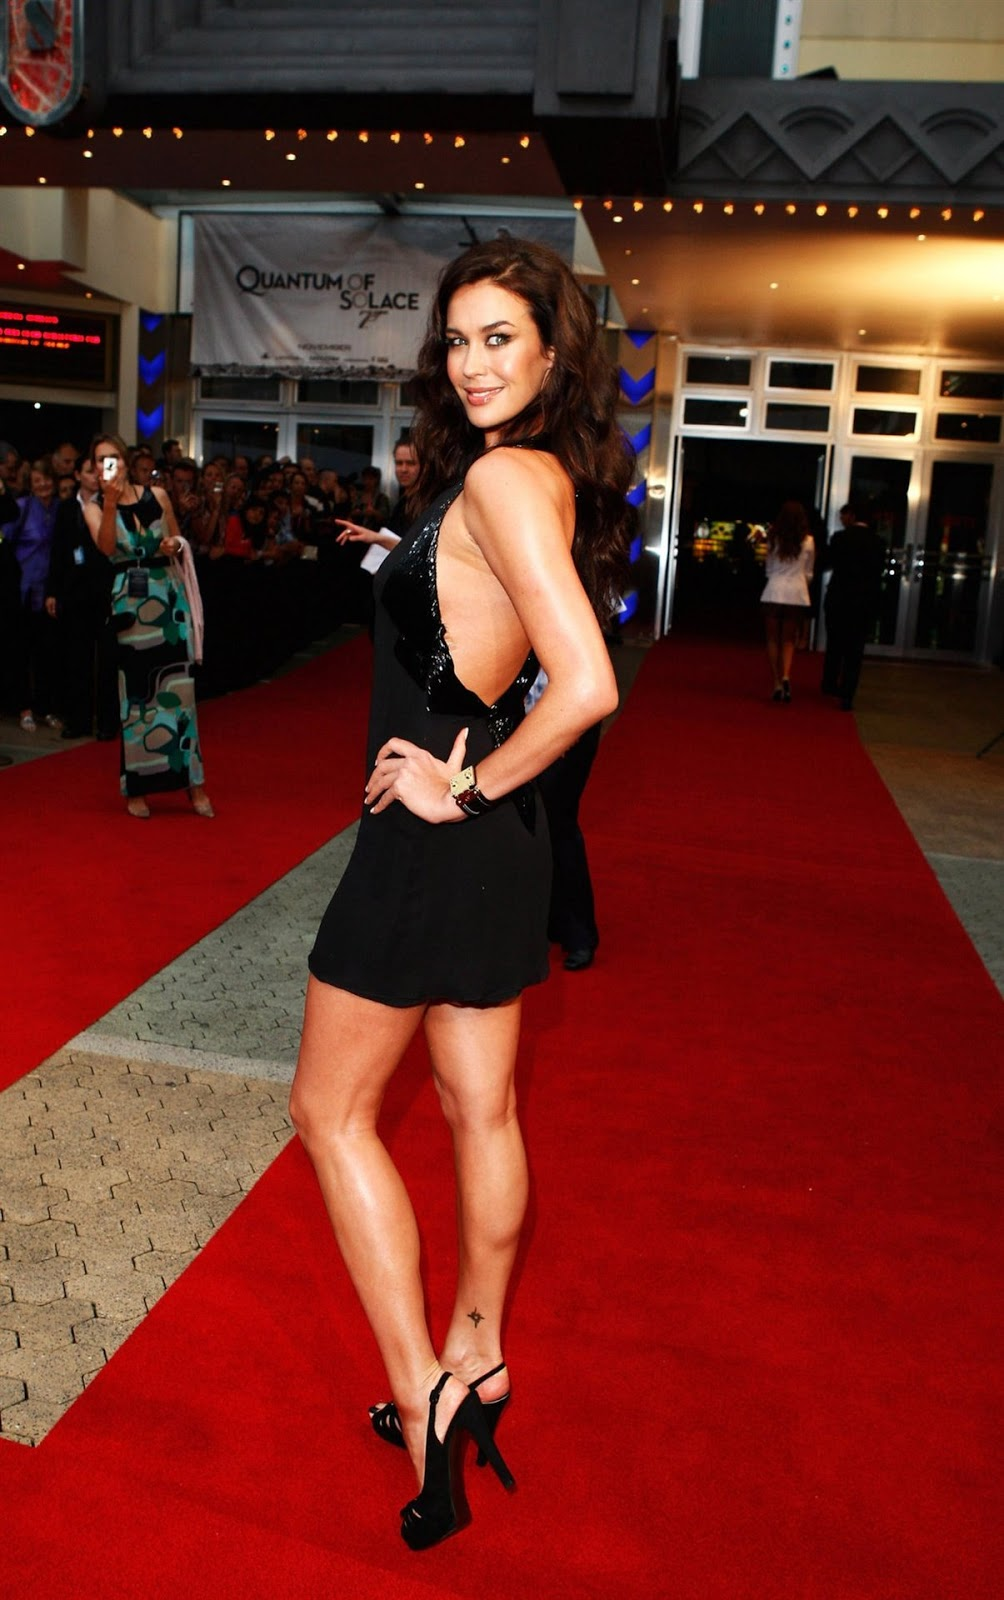 Her Calves Muscle Legs: Megan Gale sexy CALVES - Thanks to